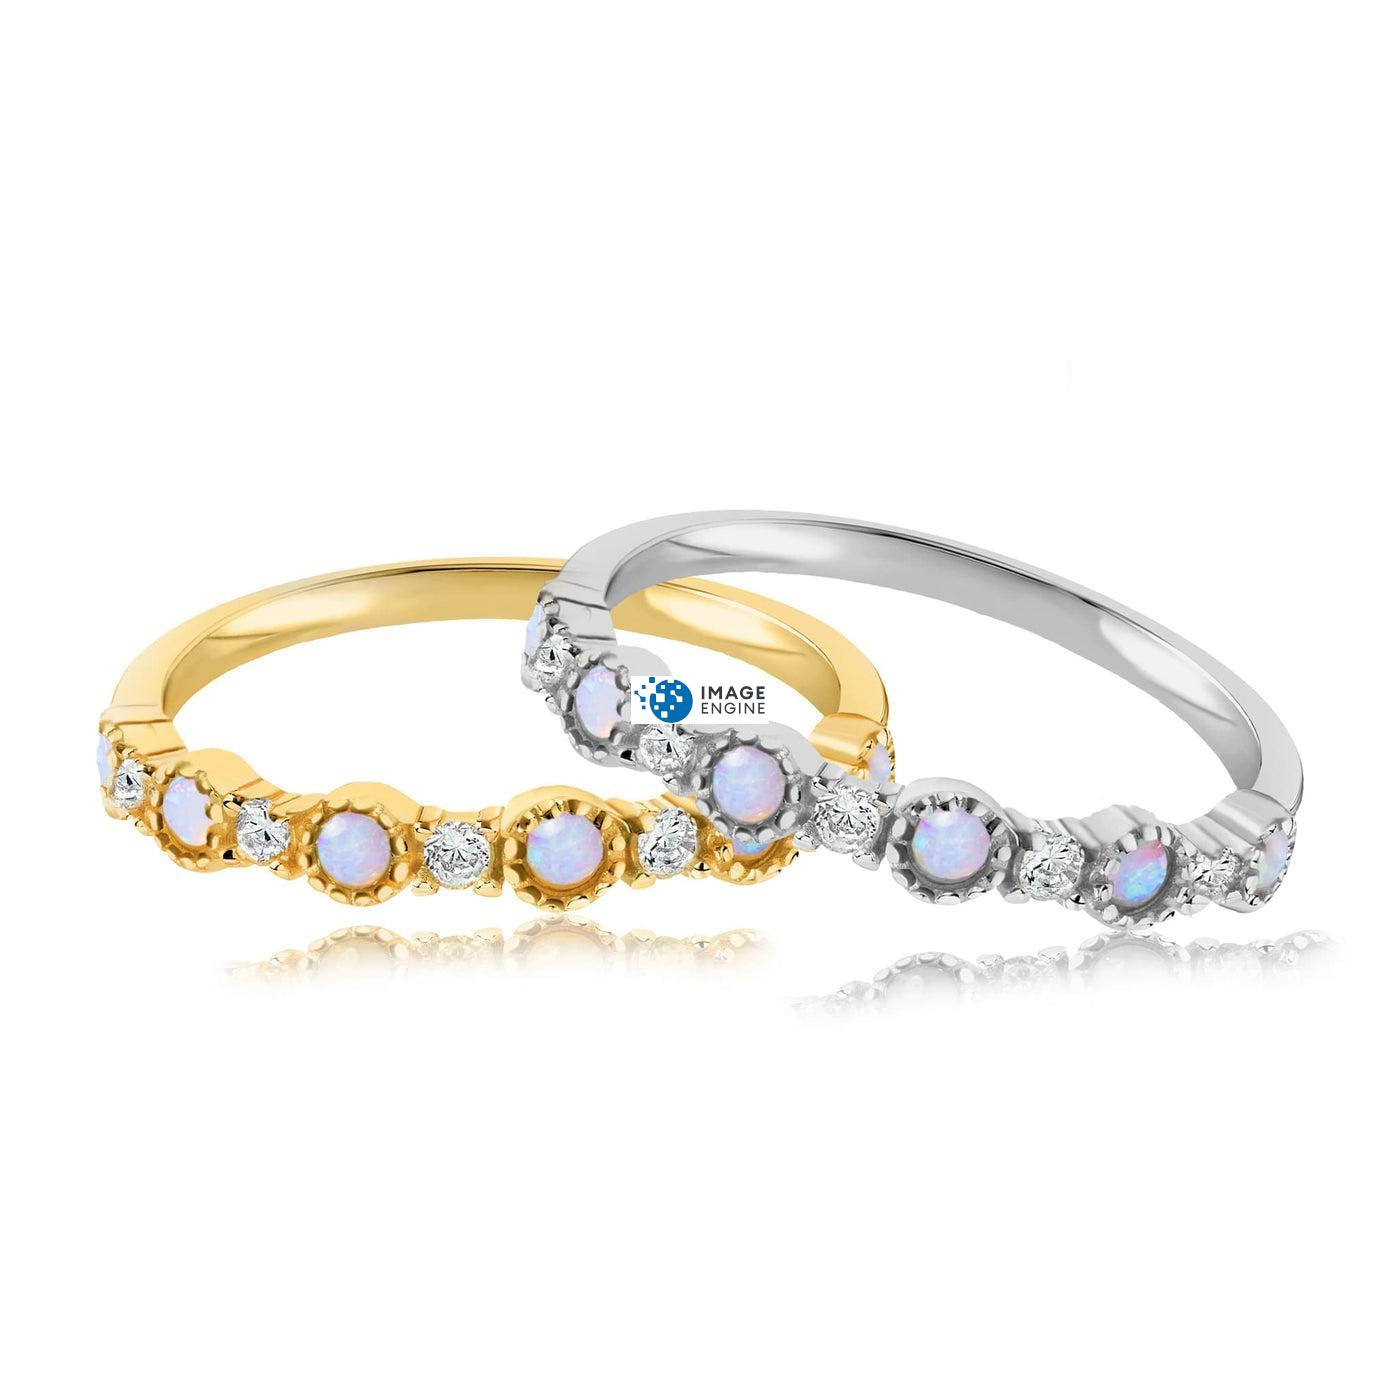 Debra Dots Opal Ring - Front View Side by Side - 18K Yellow Gold Vermeil and 925 Sterling Silver